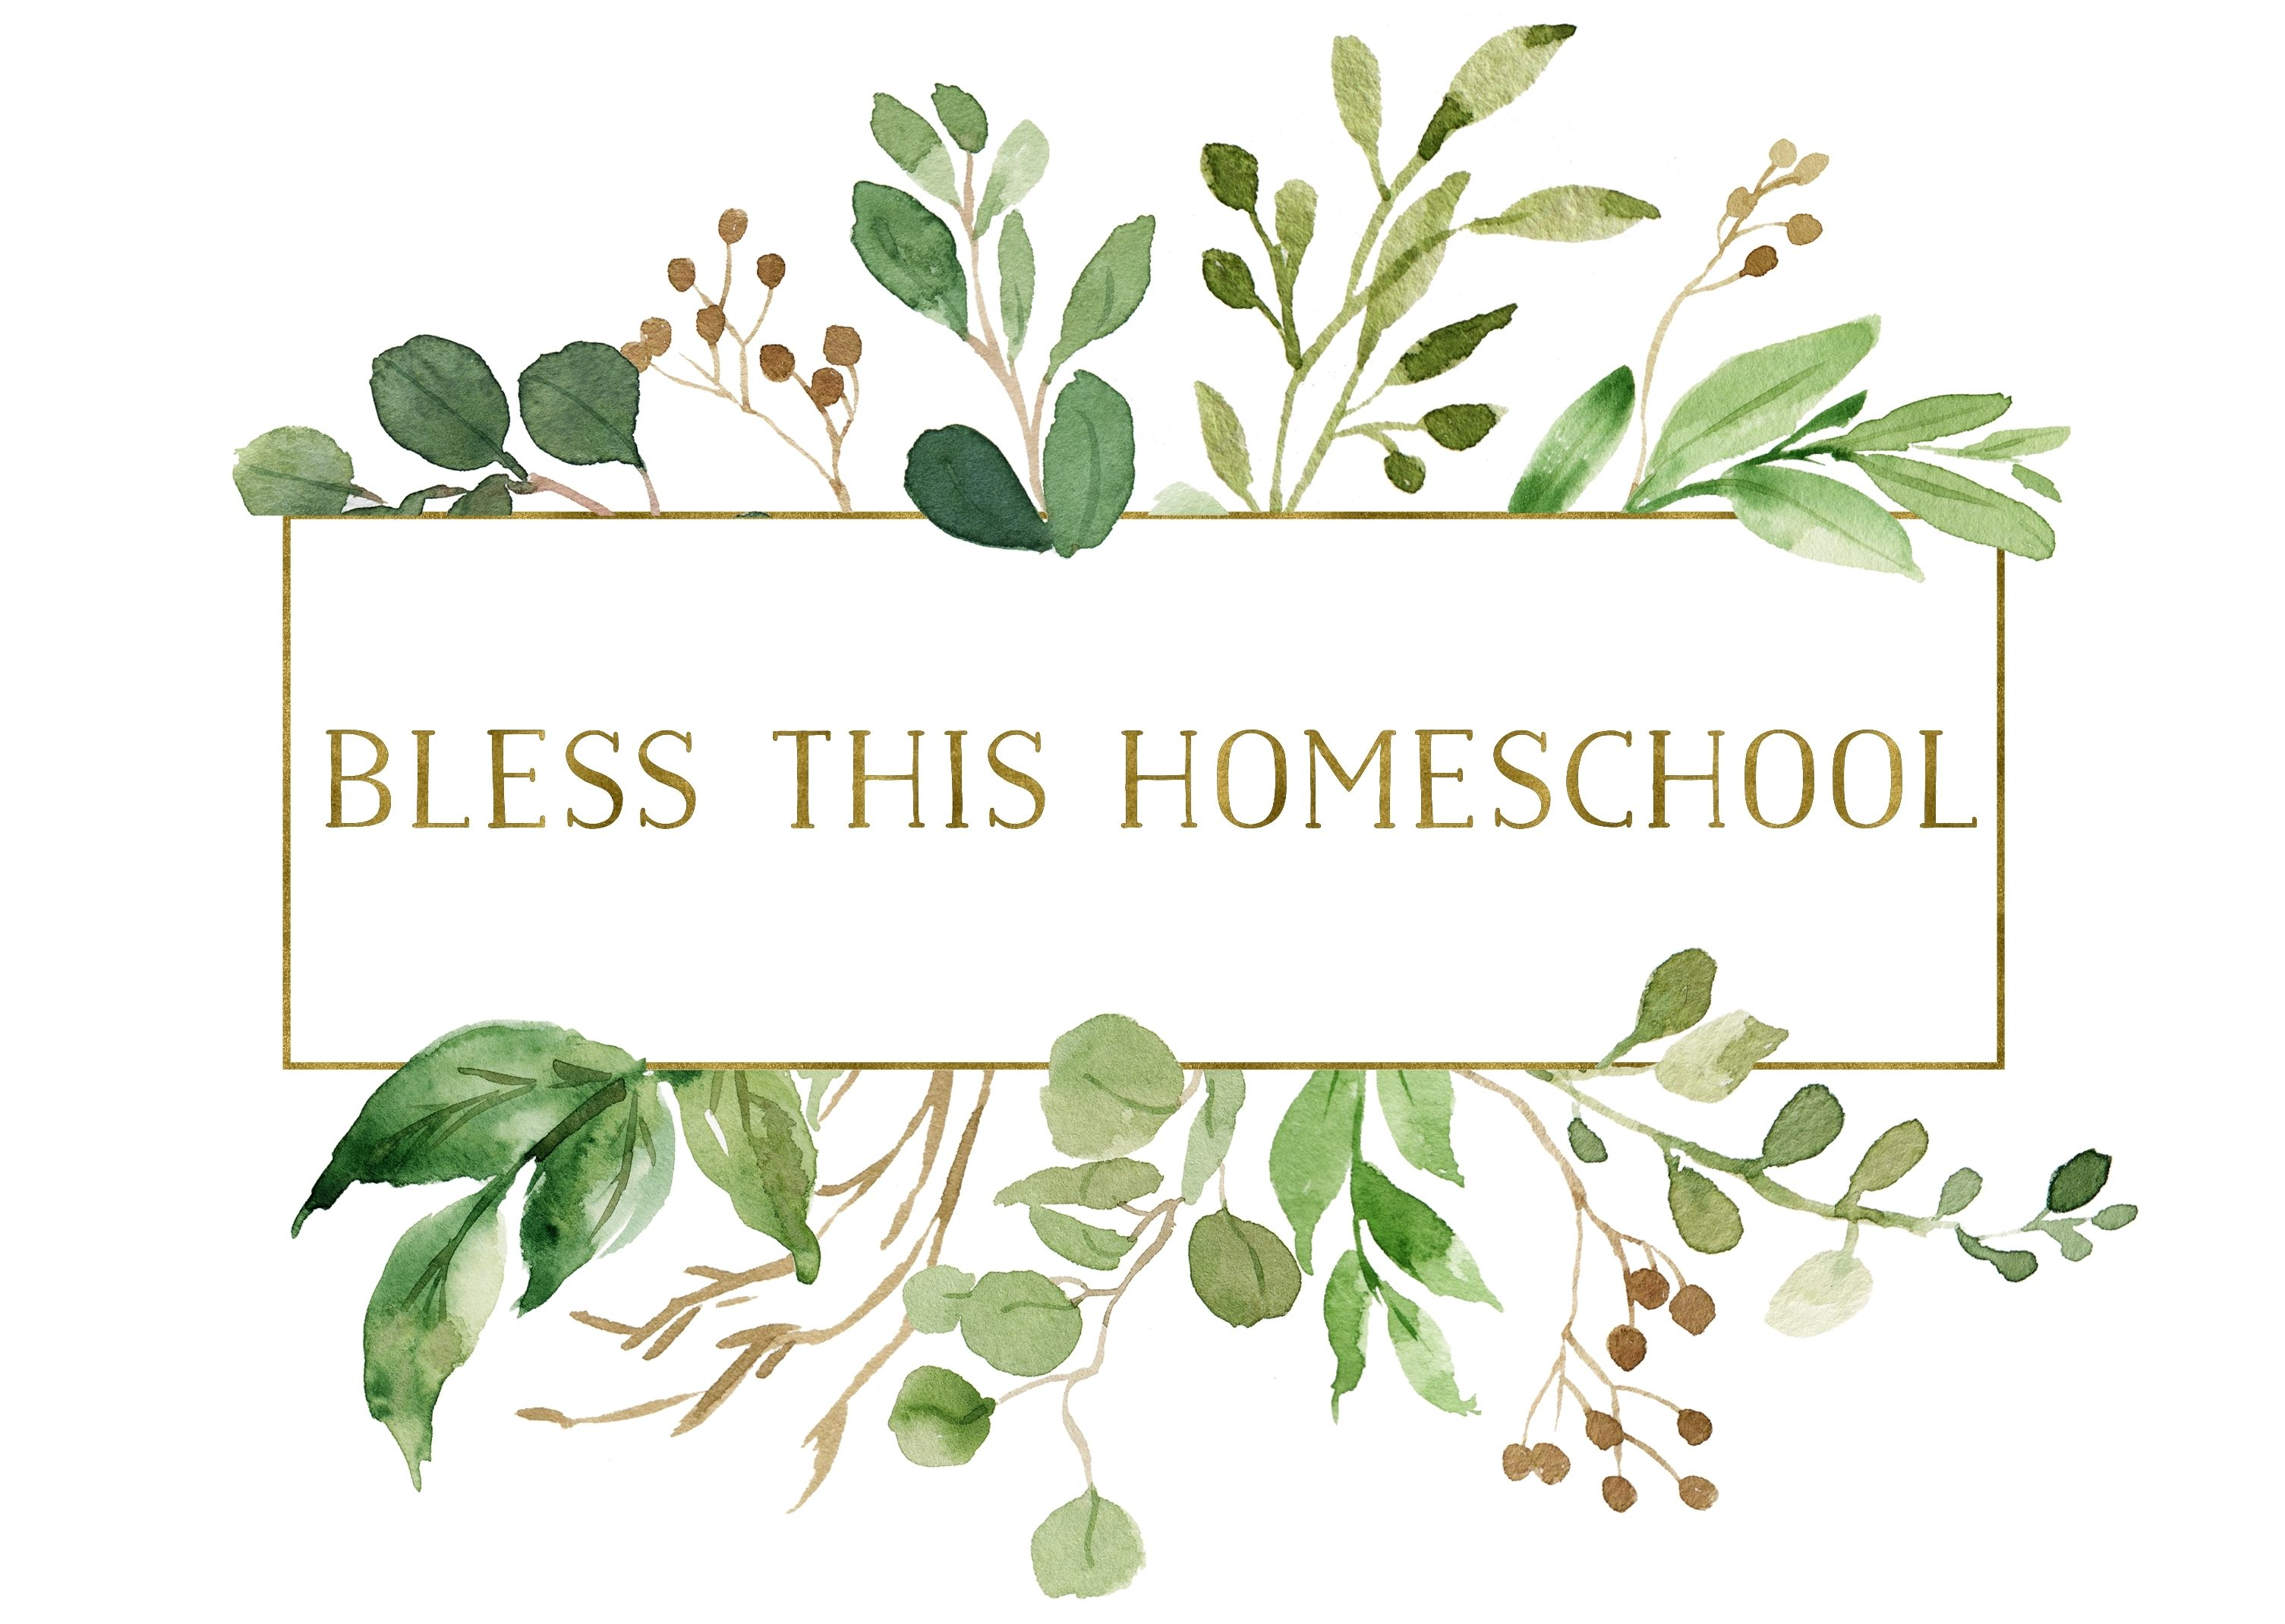 Bless This Homeschool